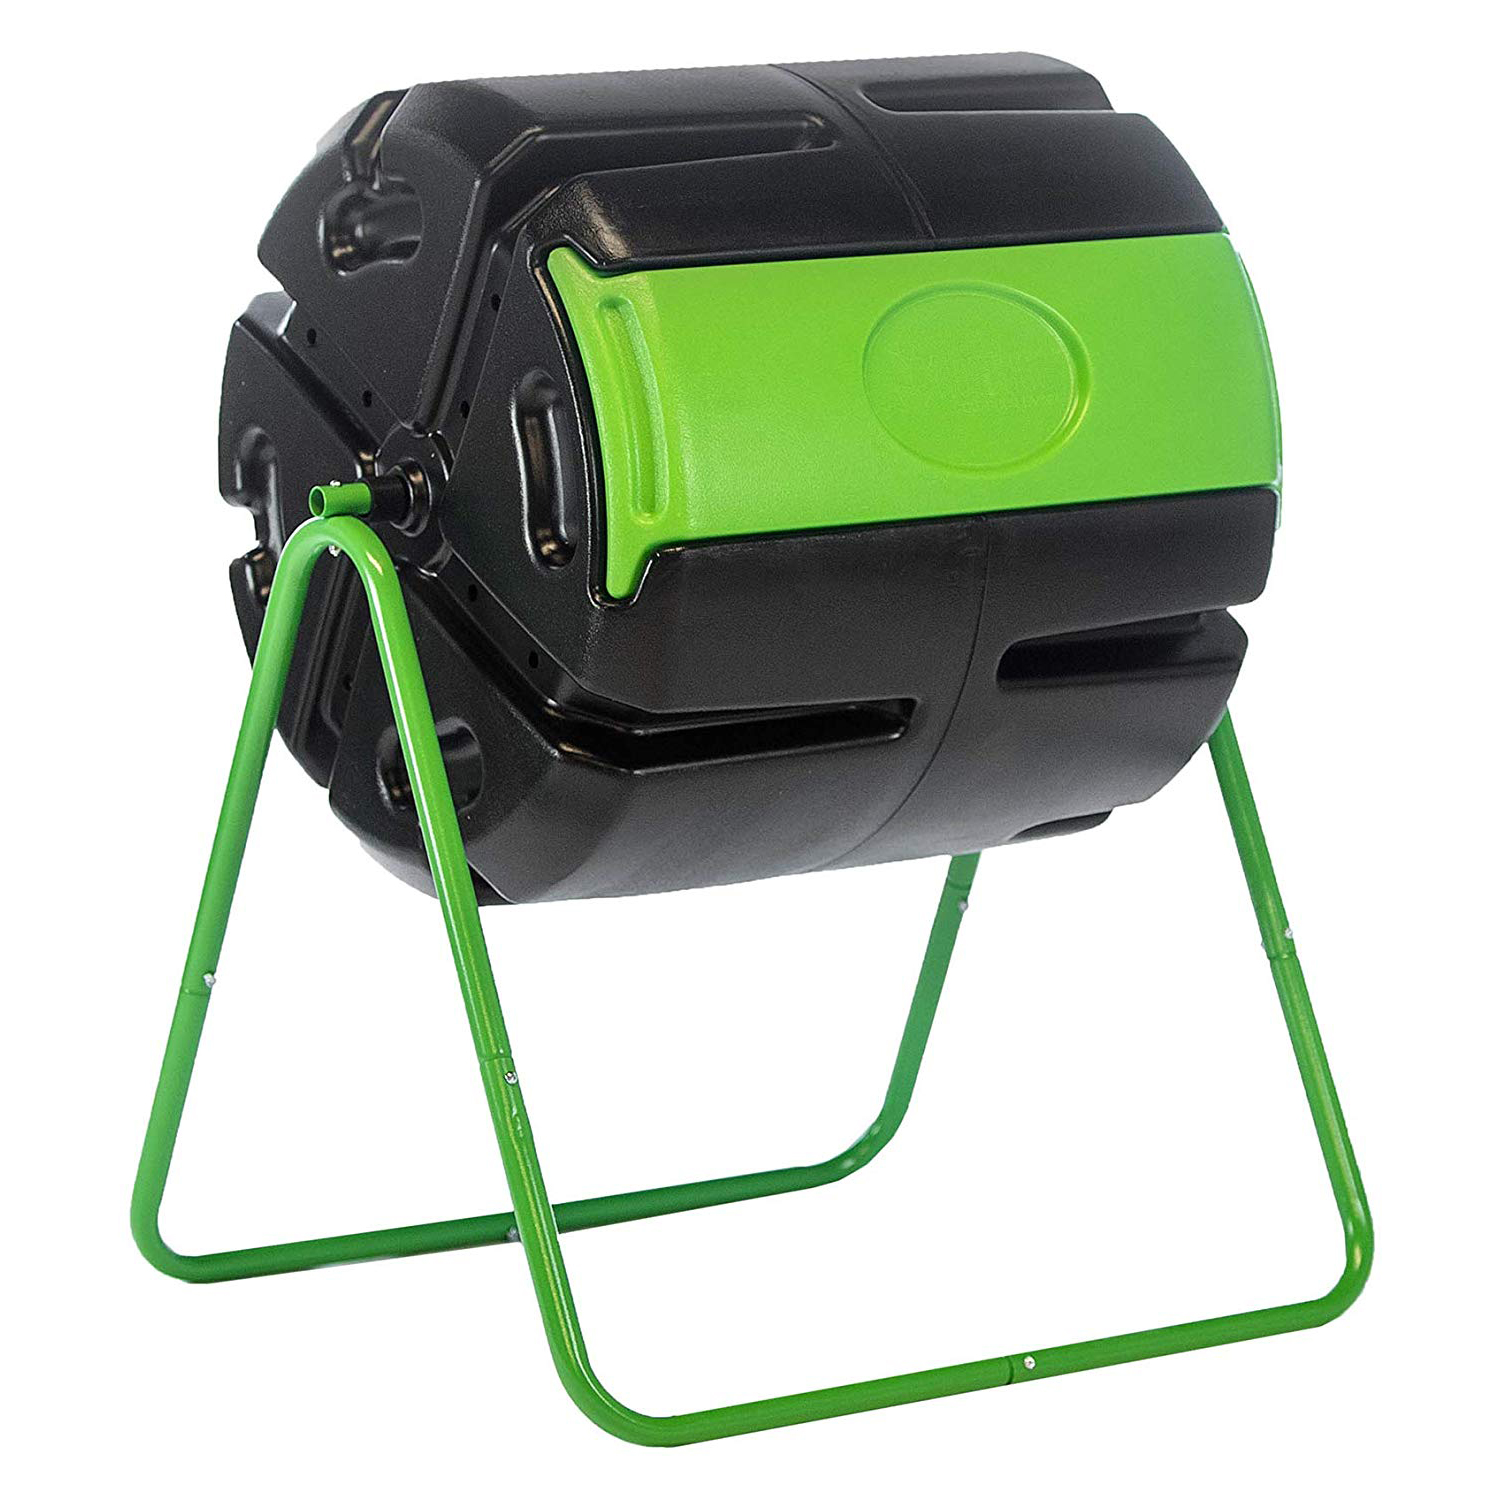 FCMP Outdoor Roto 37 Gal Plastic Rotating Tumbling Composter Compost Open Box